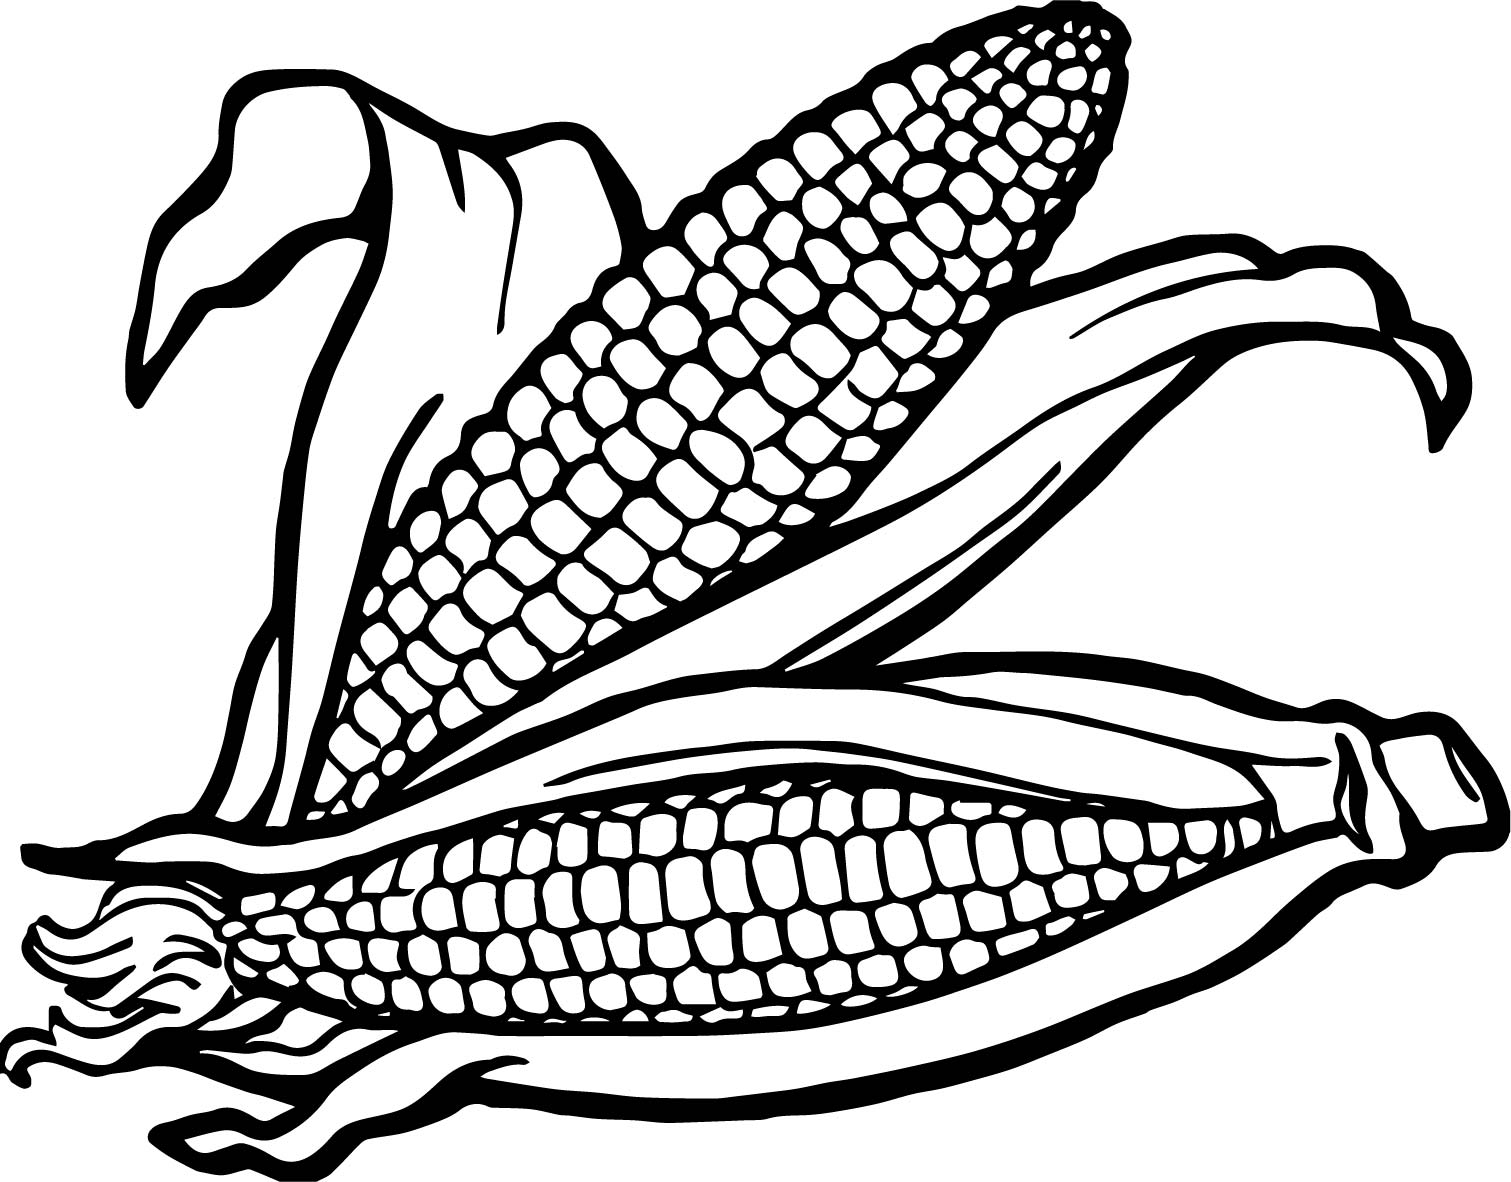 Vegetable Corns Coloring Page